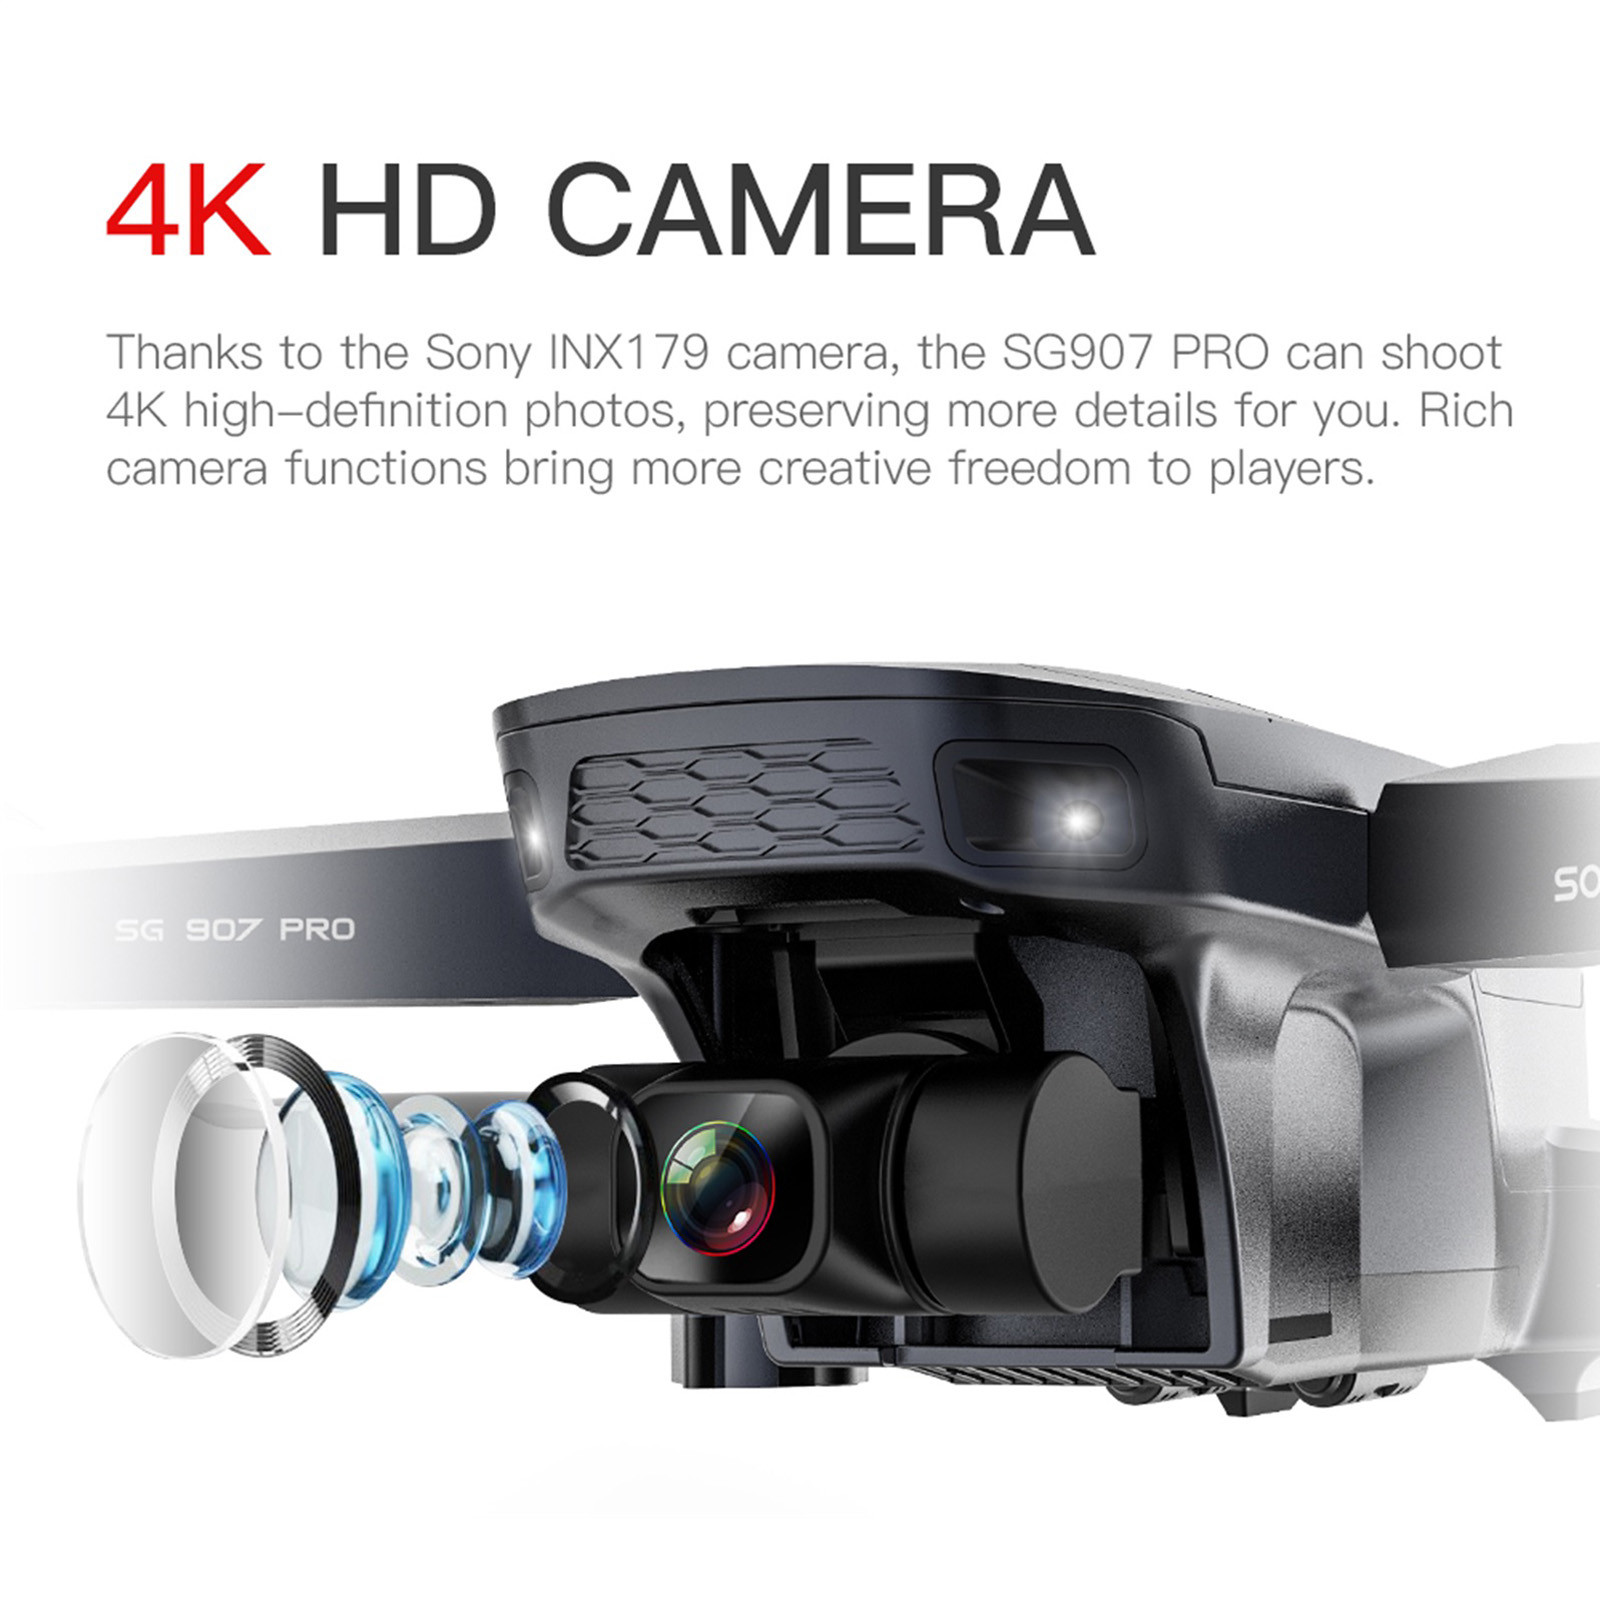 H4203ad55dc7348f68a4d25acade6b559R - 2020 New Sg907 Pro 5g Wifi Drone 2-axis Gimbal 4k Camera Wifi Gps Rc Drone Toy Rc Four-axis Professional Folding Camera Drones